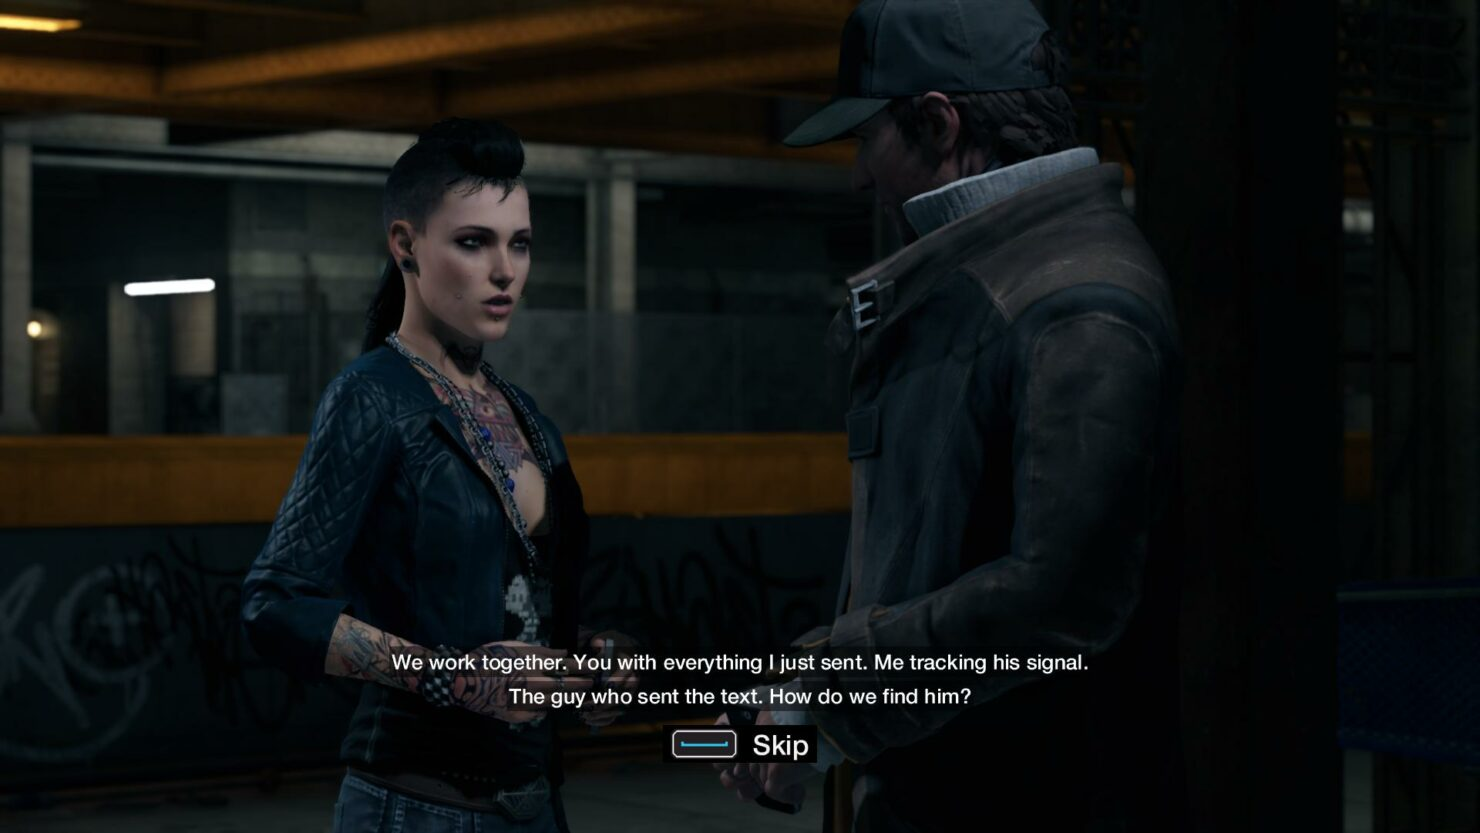 watch_dogs-2014-05-24-16-31-29-84